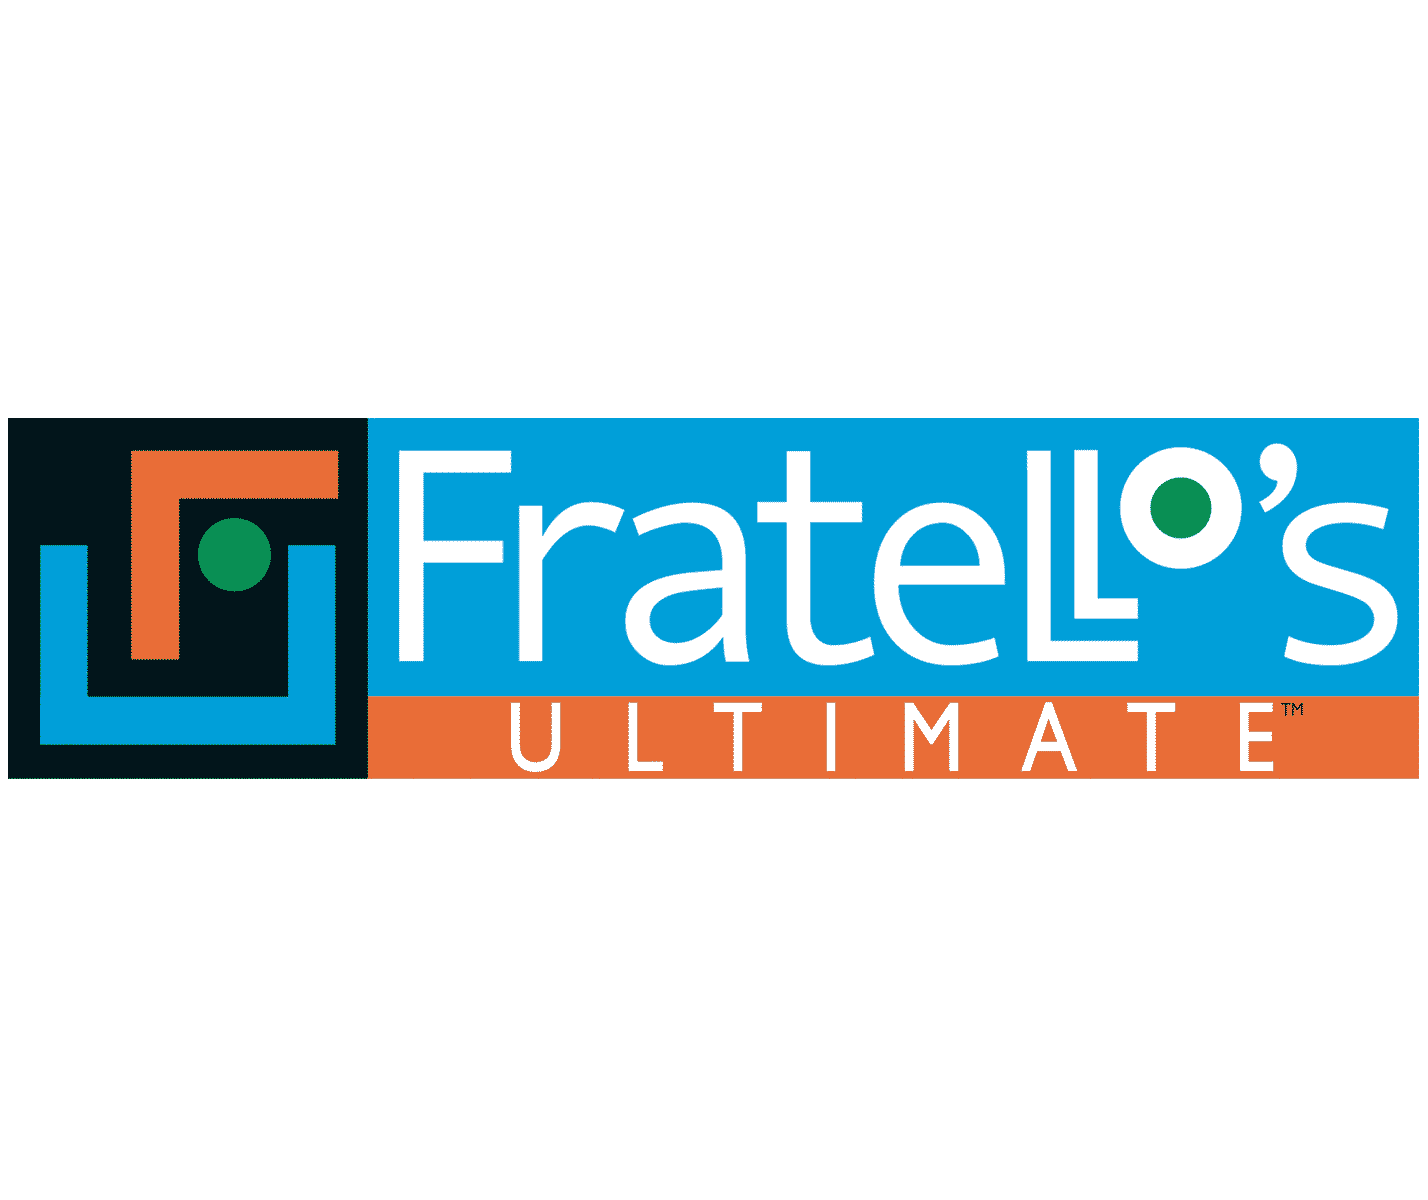 fratellos ultimate